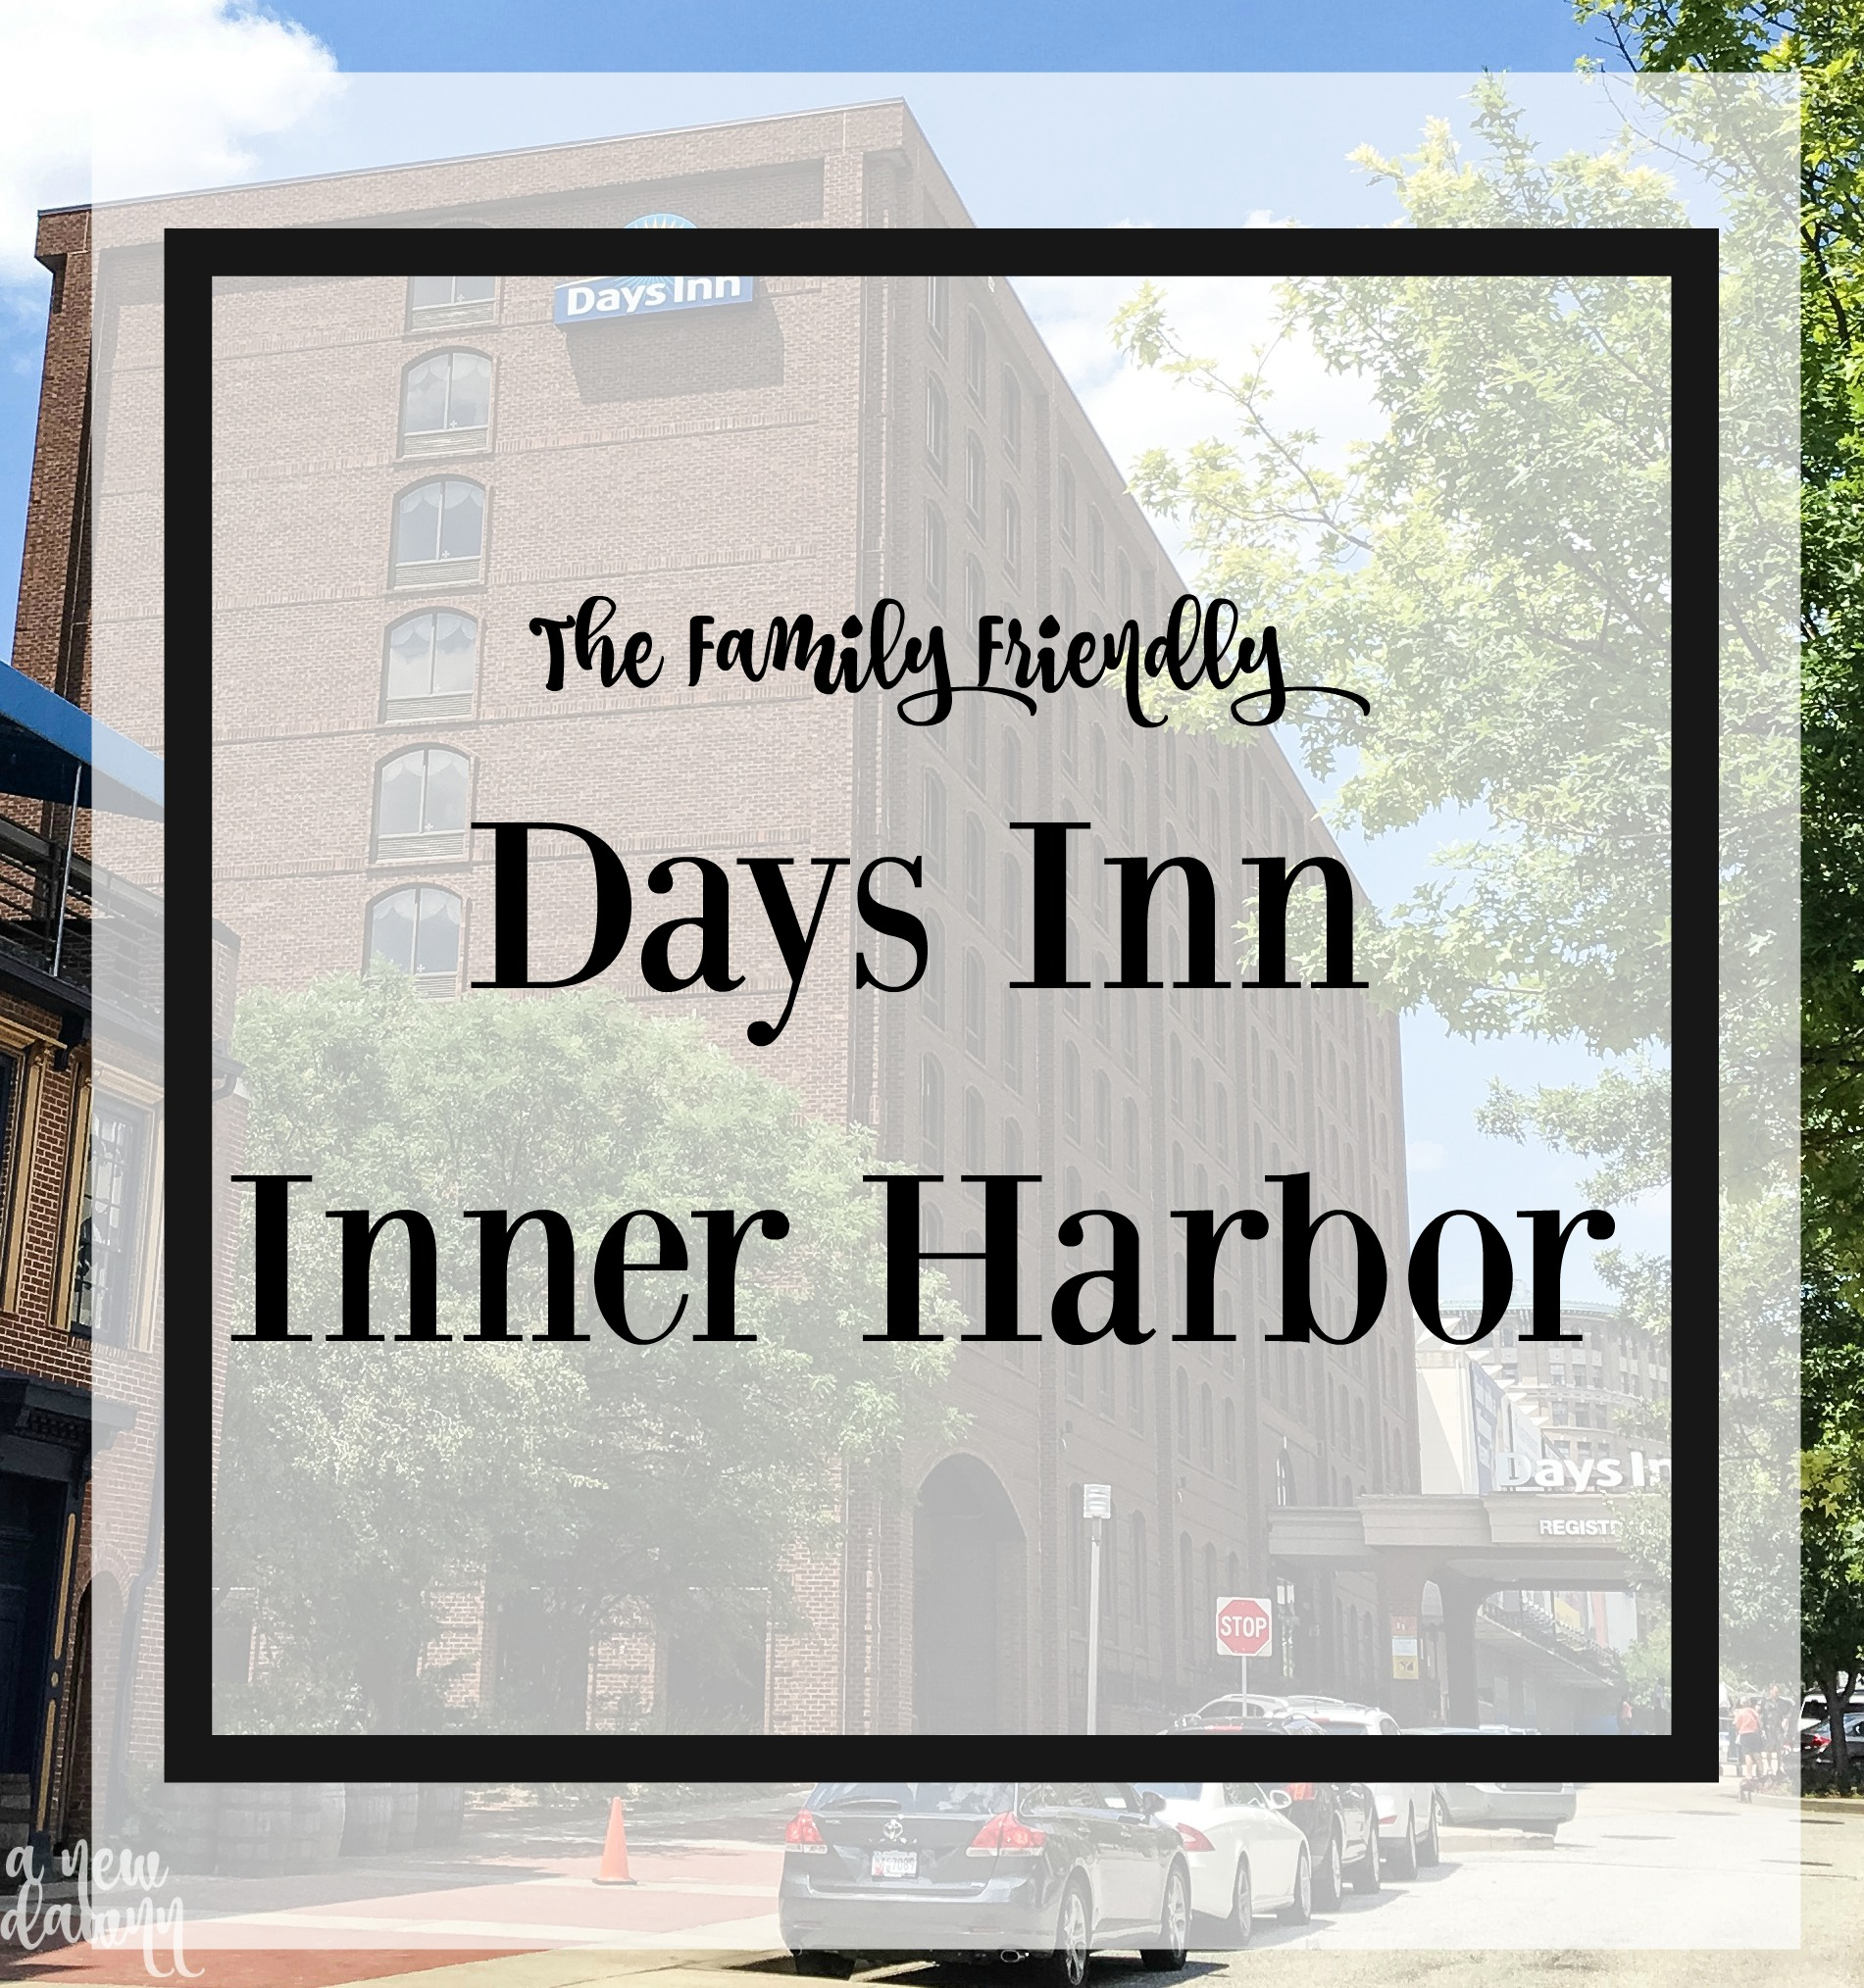 Days Inn Inner Harbor